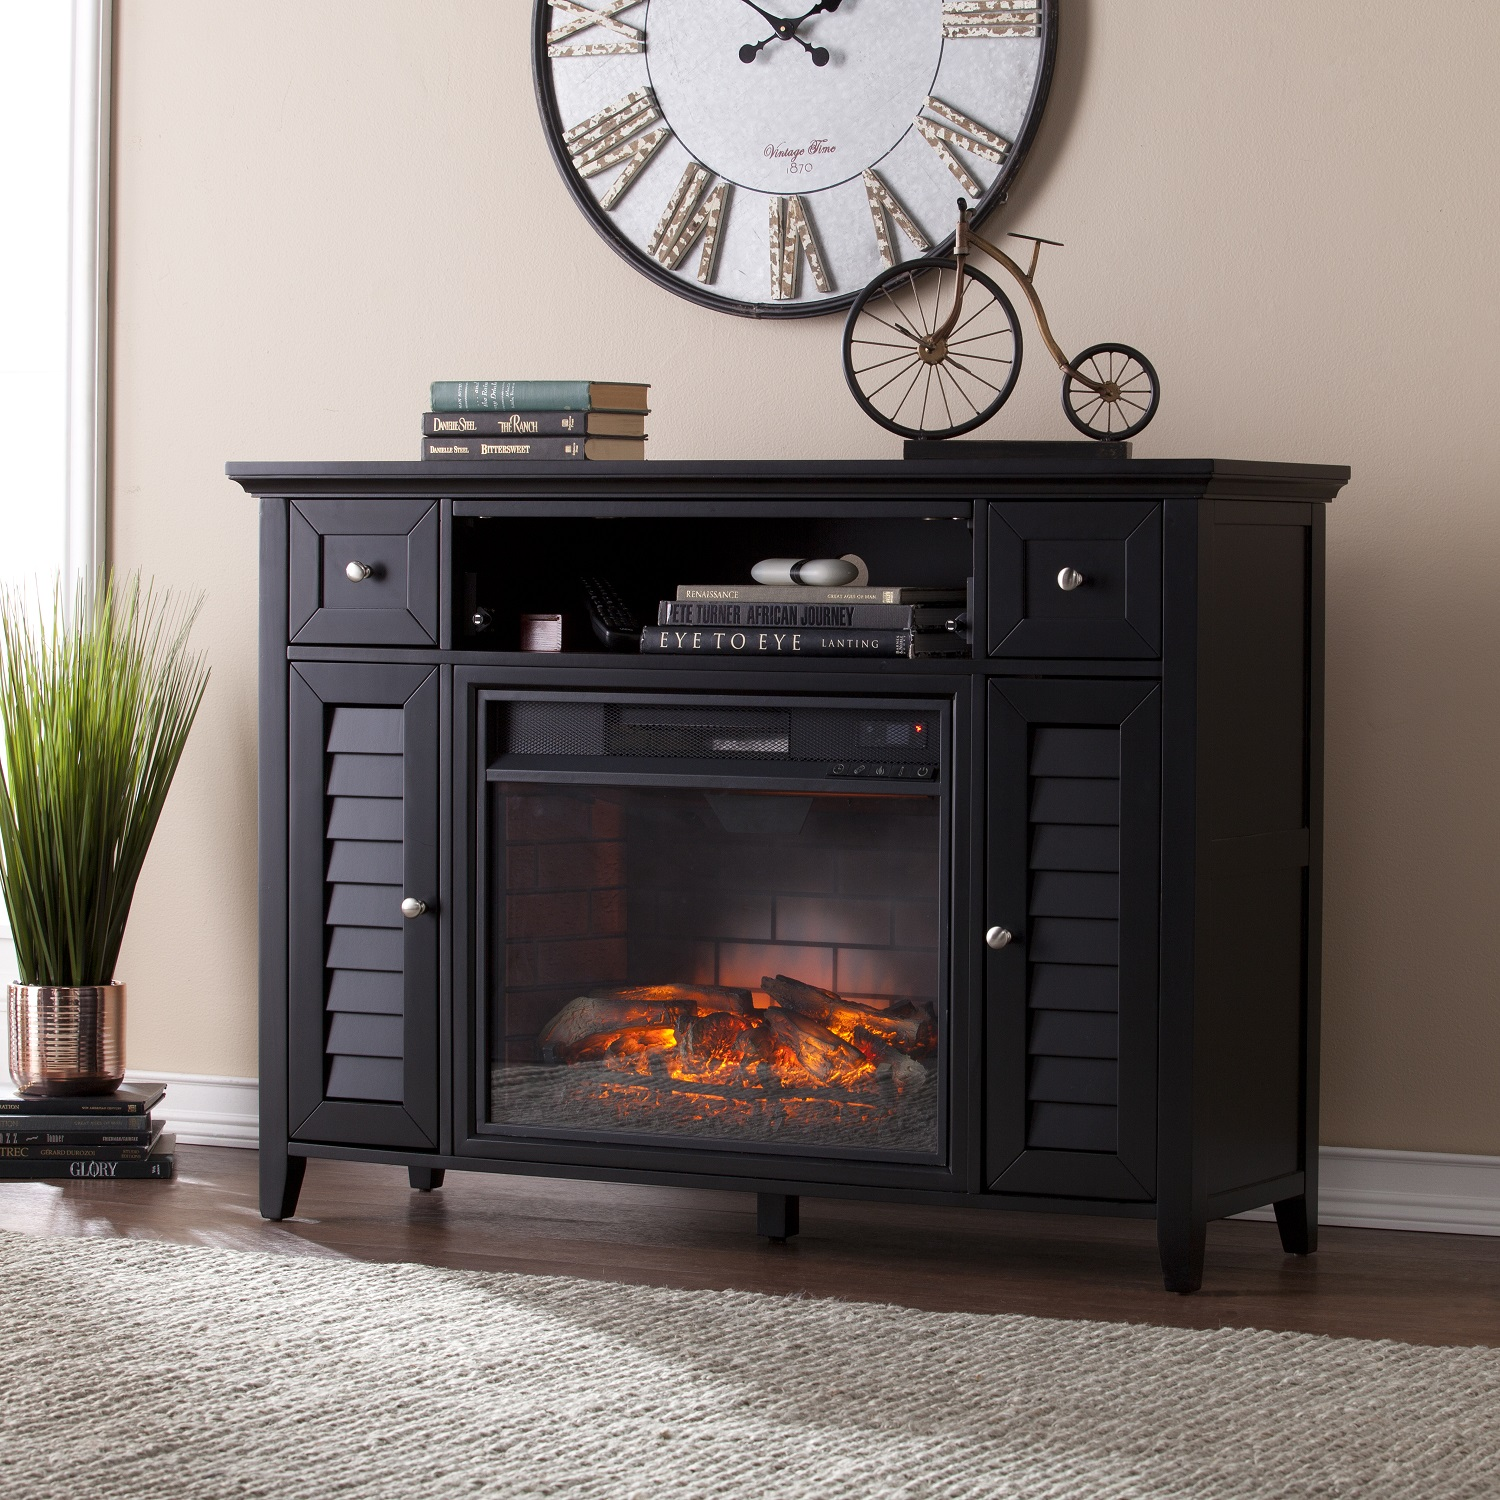 48 Quot Fairbury 3 In 1 Infrared Media Fireplace Console Black